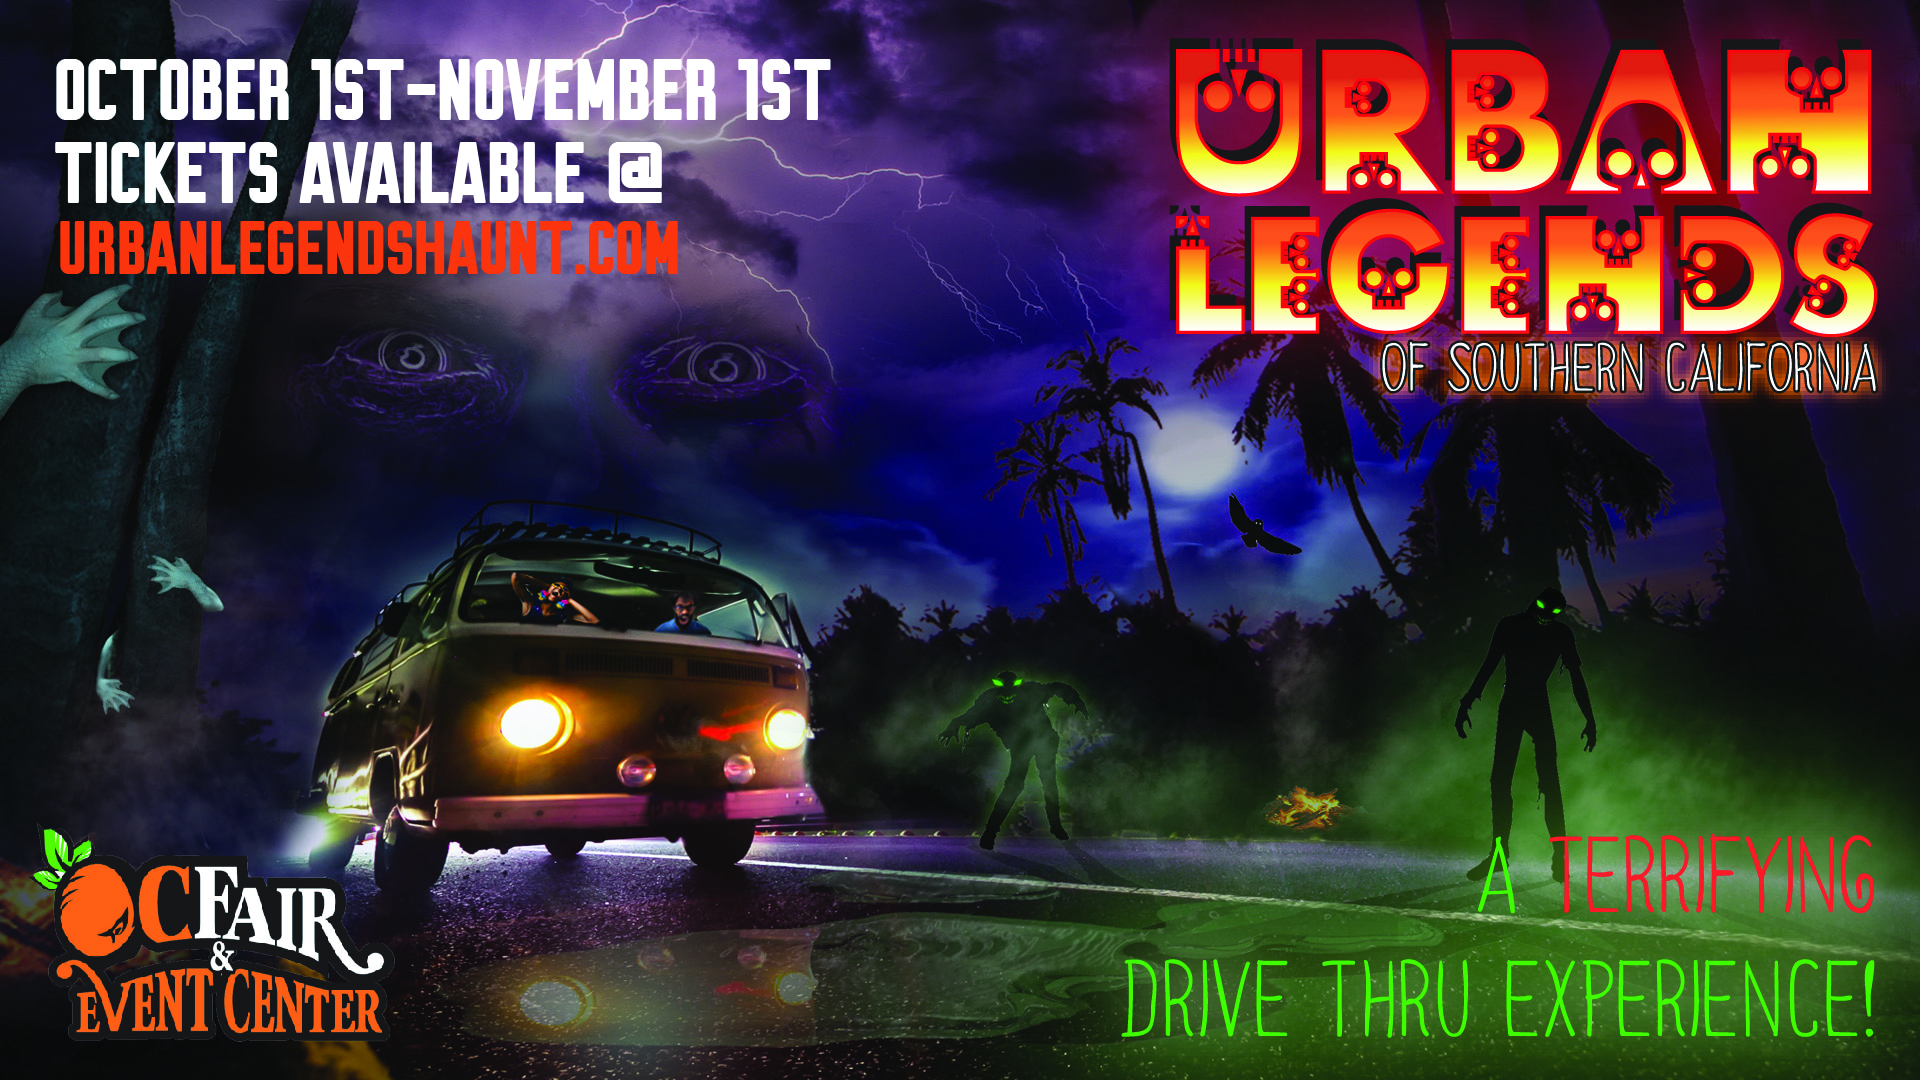 Halloween Festivals In Southern California 2020 Drive through the 'Urban Legends of Southern California' Halloween